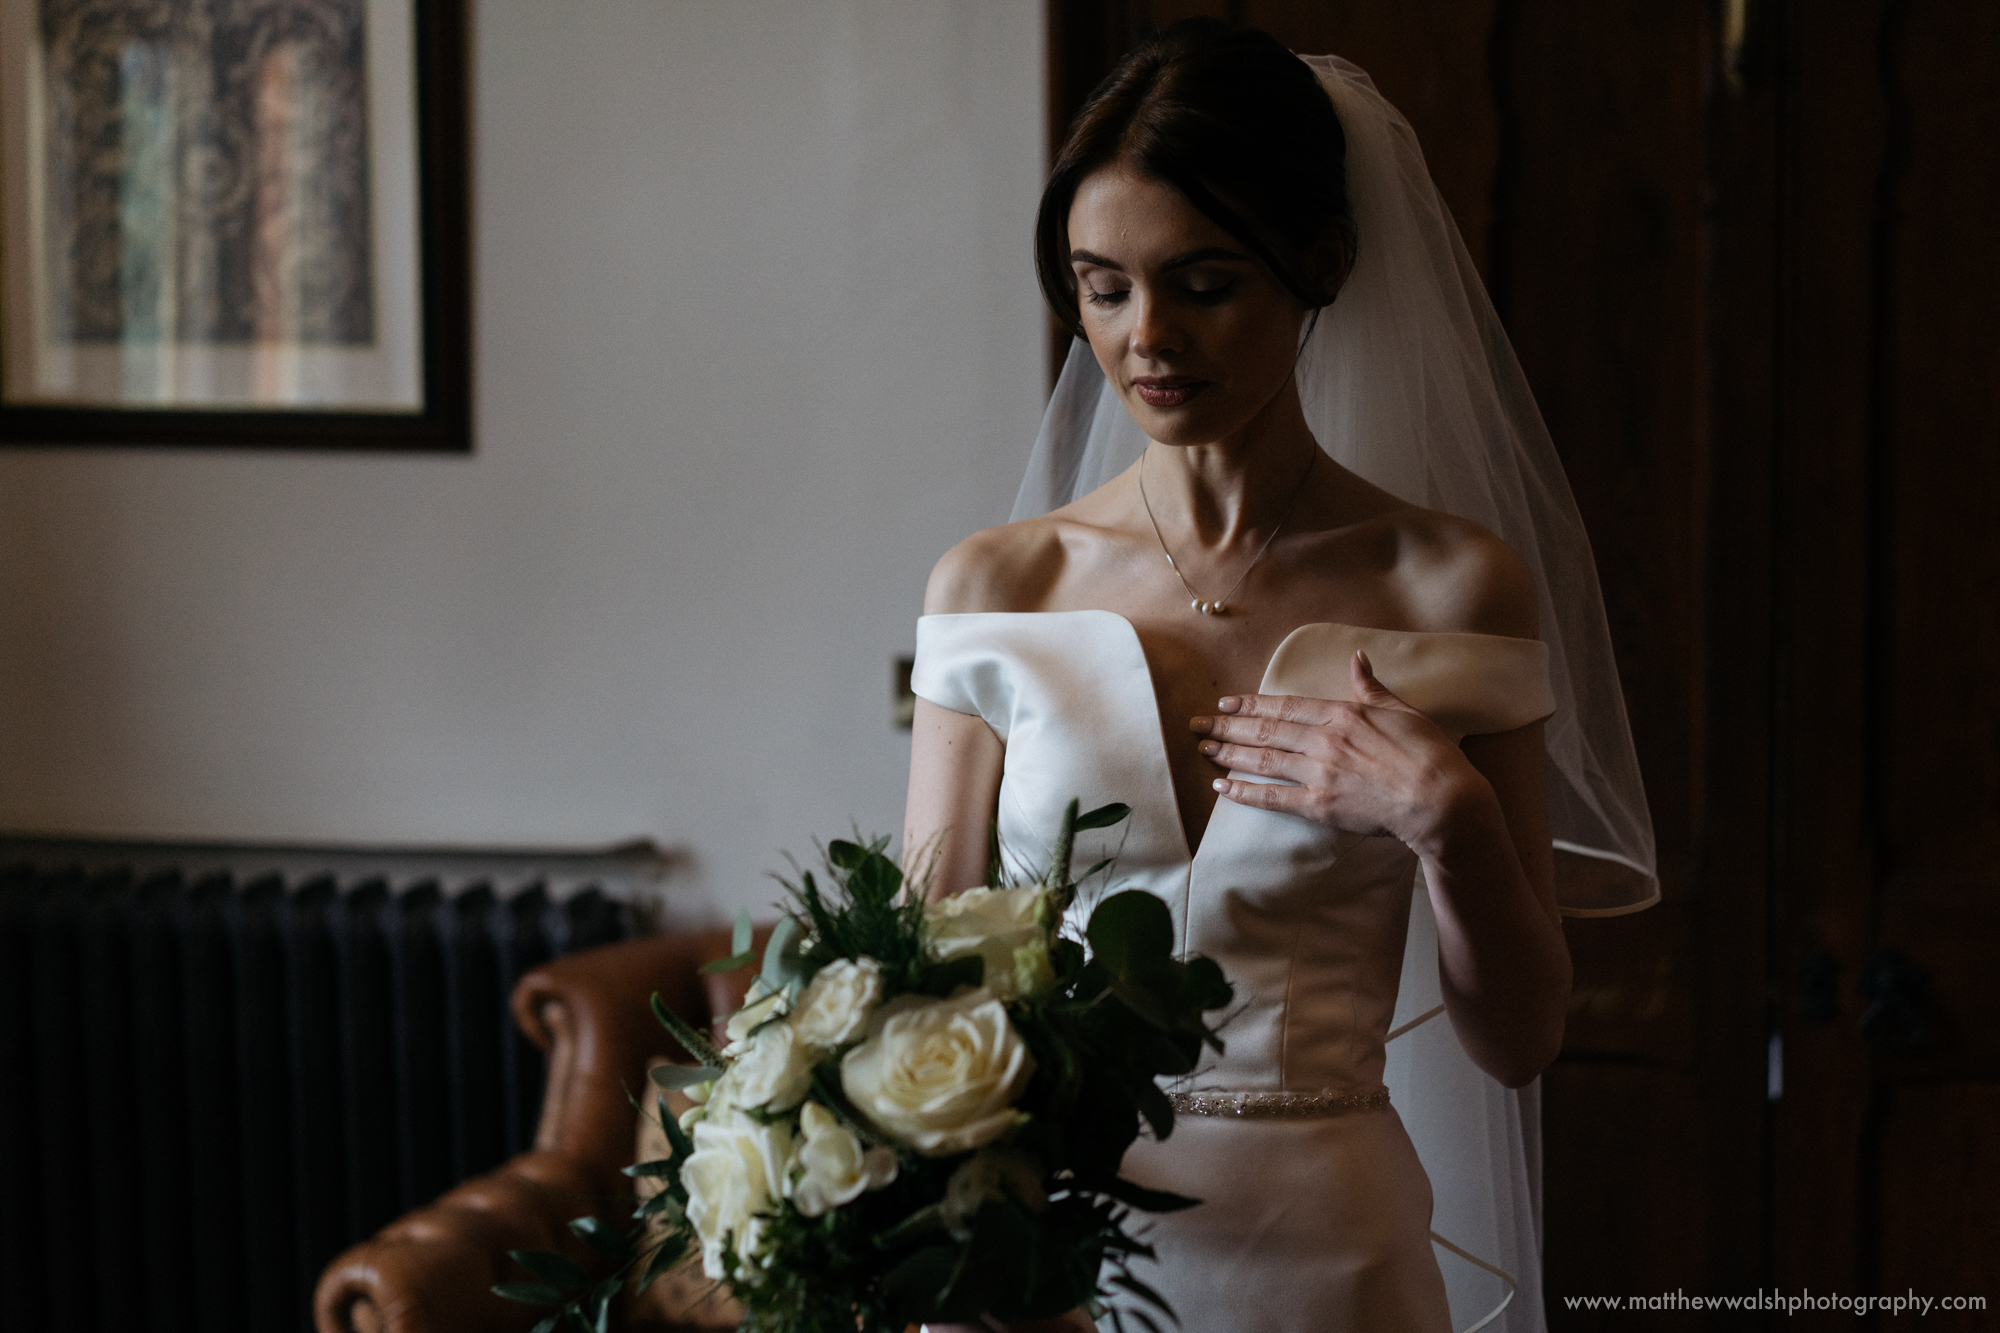 The bride looking beautiful with a little window light